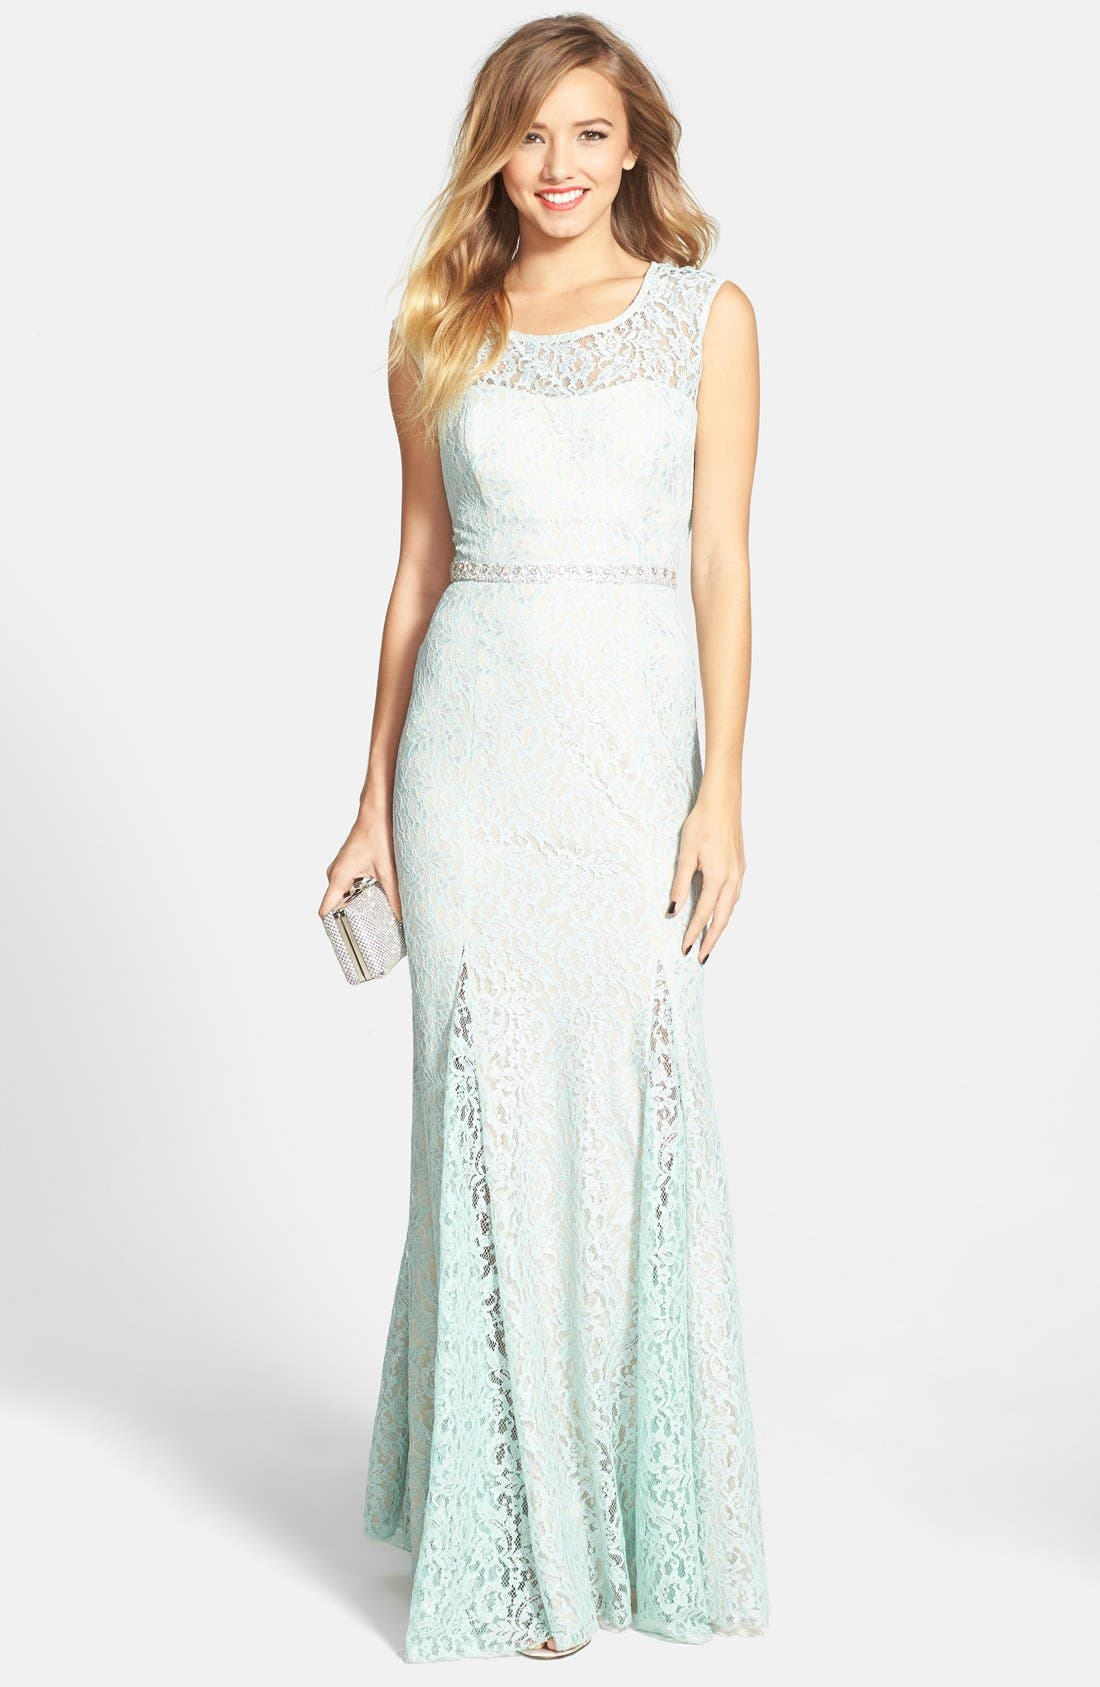 Alternate Image 1 Selected - Sequin Hearts Embellished Metallic Lace Gown (Juniors)